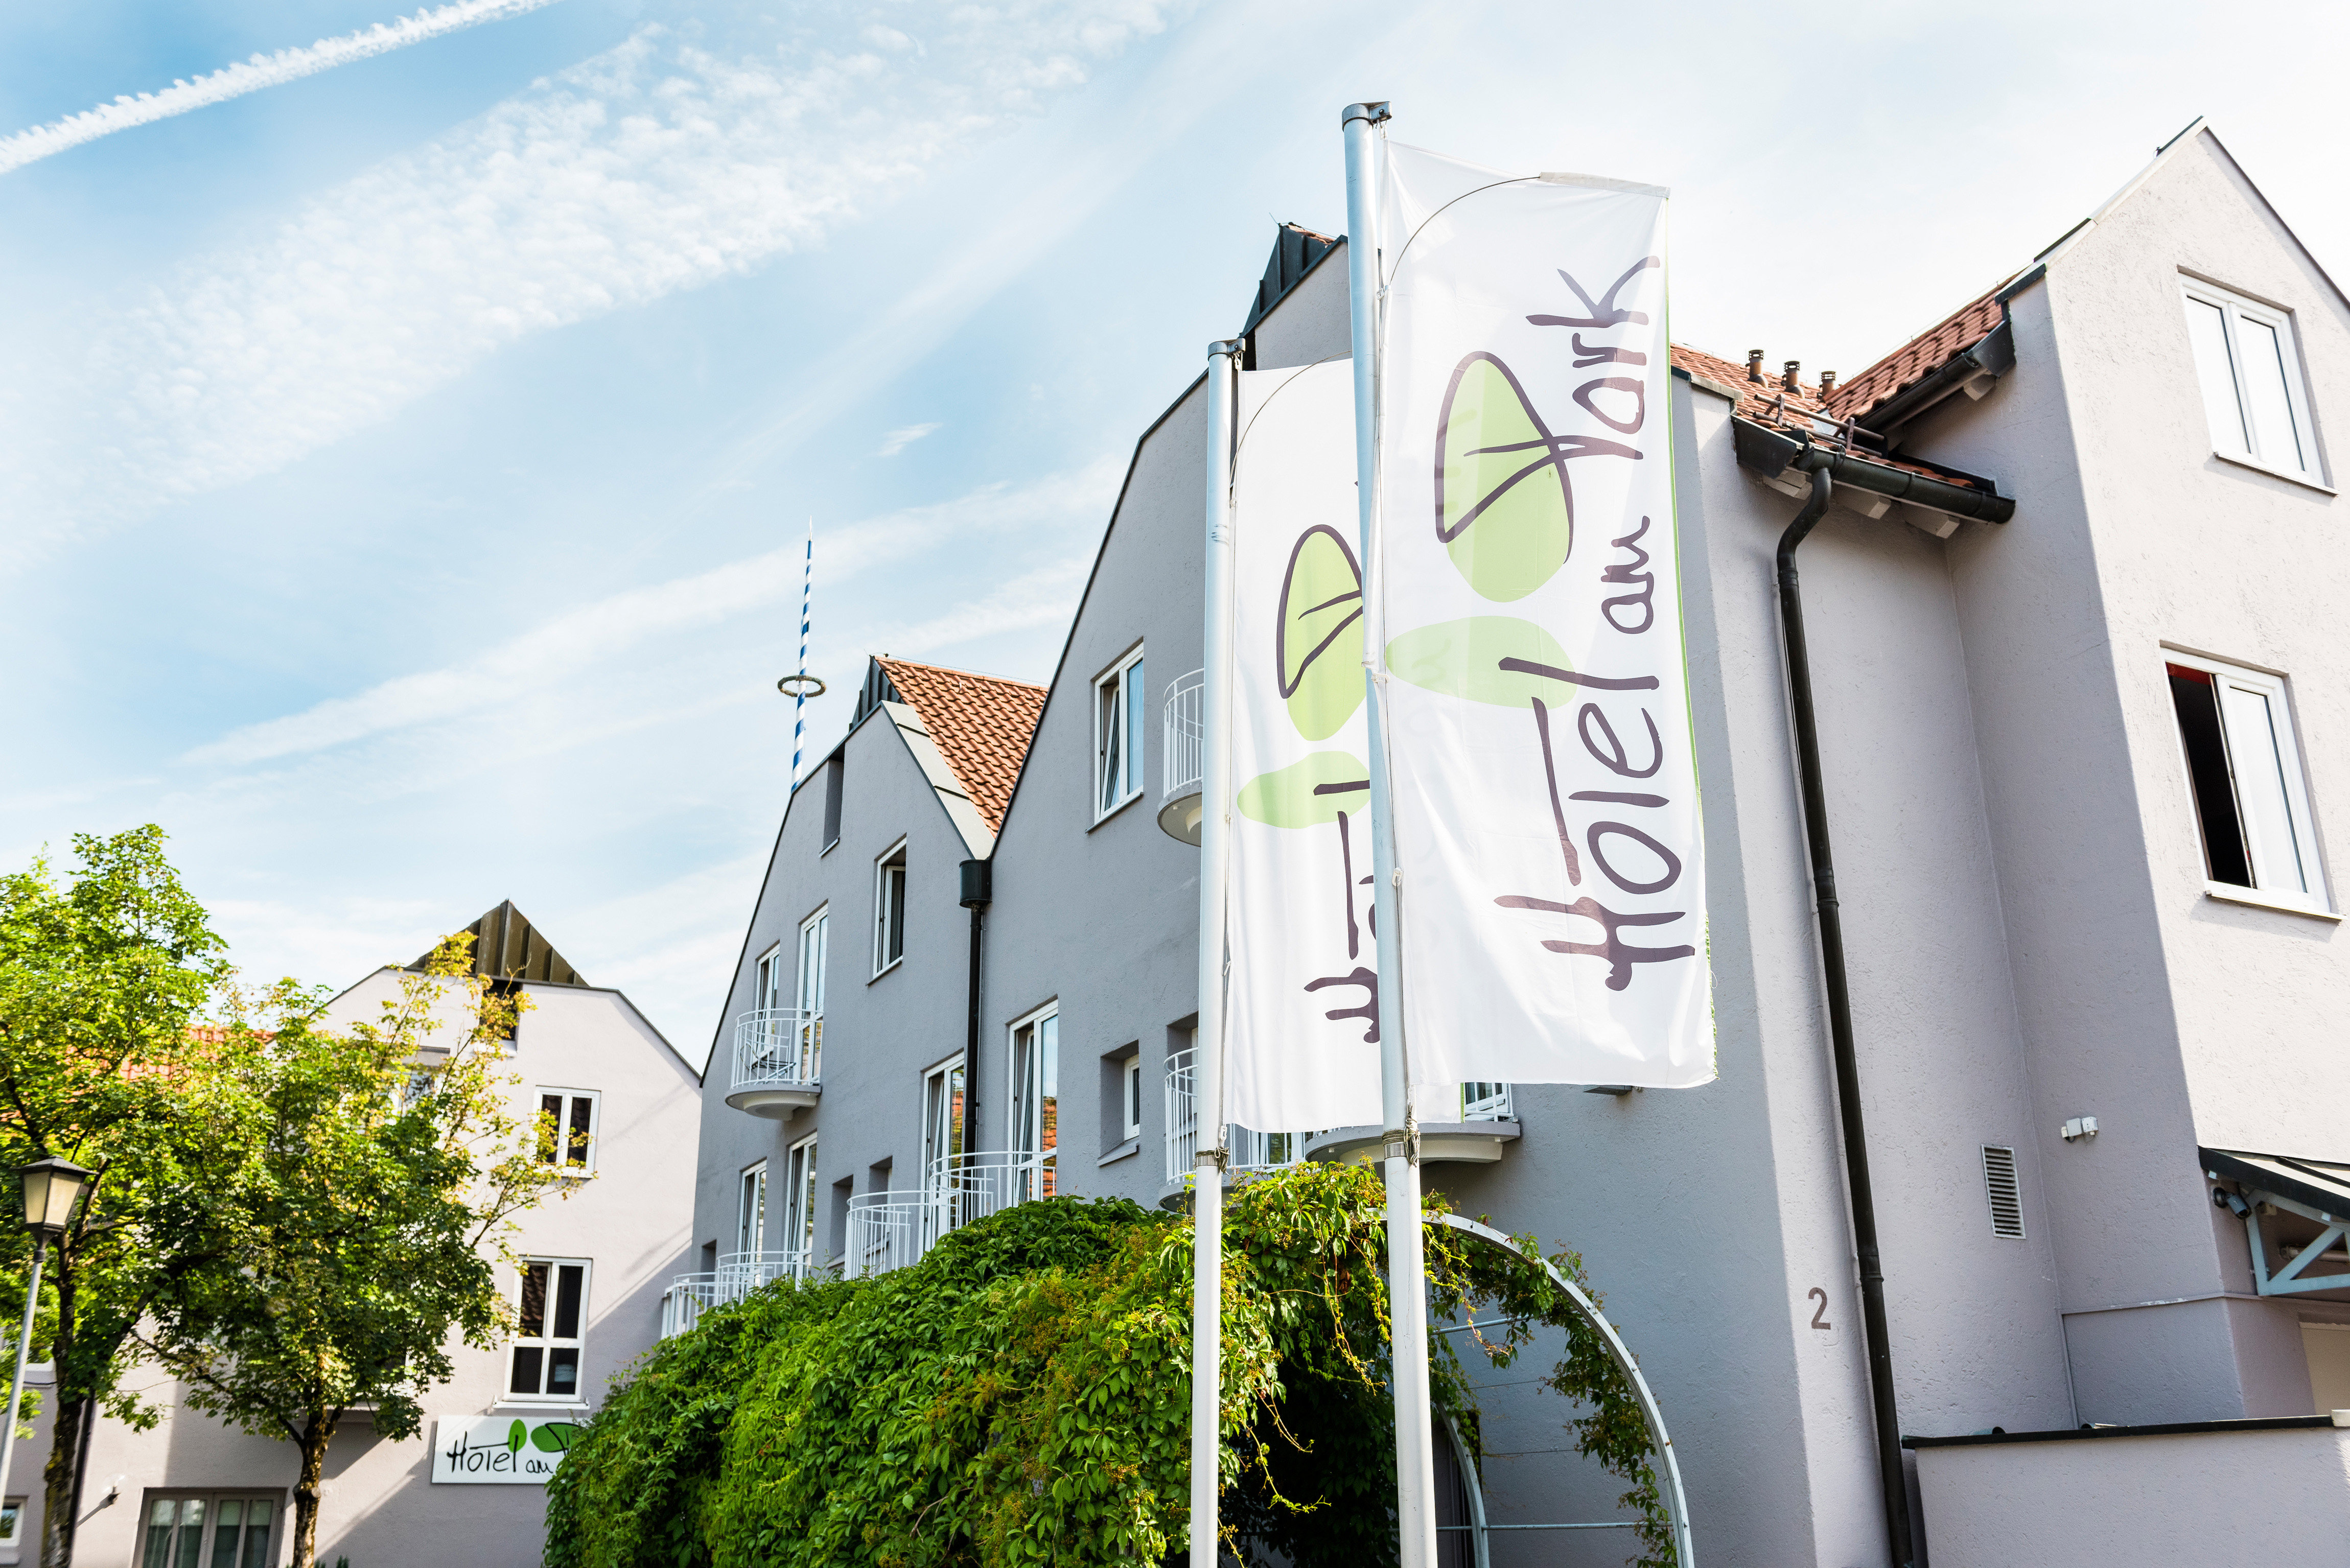 Hotel One Garching Hotel In Garching Near Munich A Productive Bavarian Stay